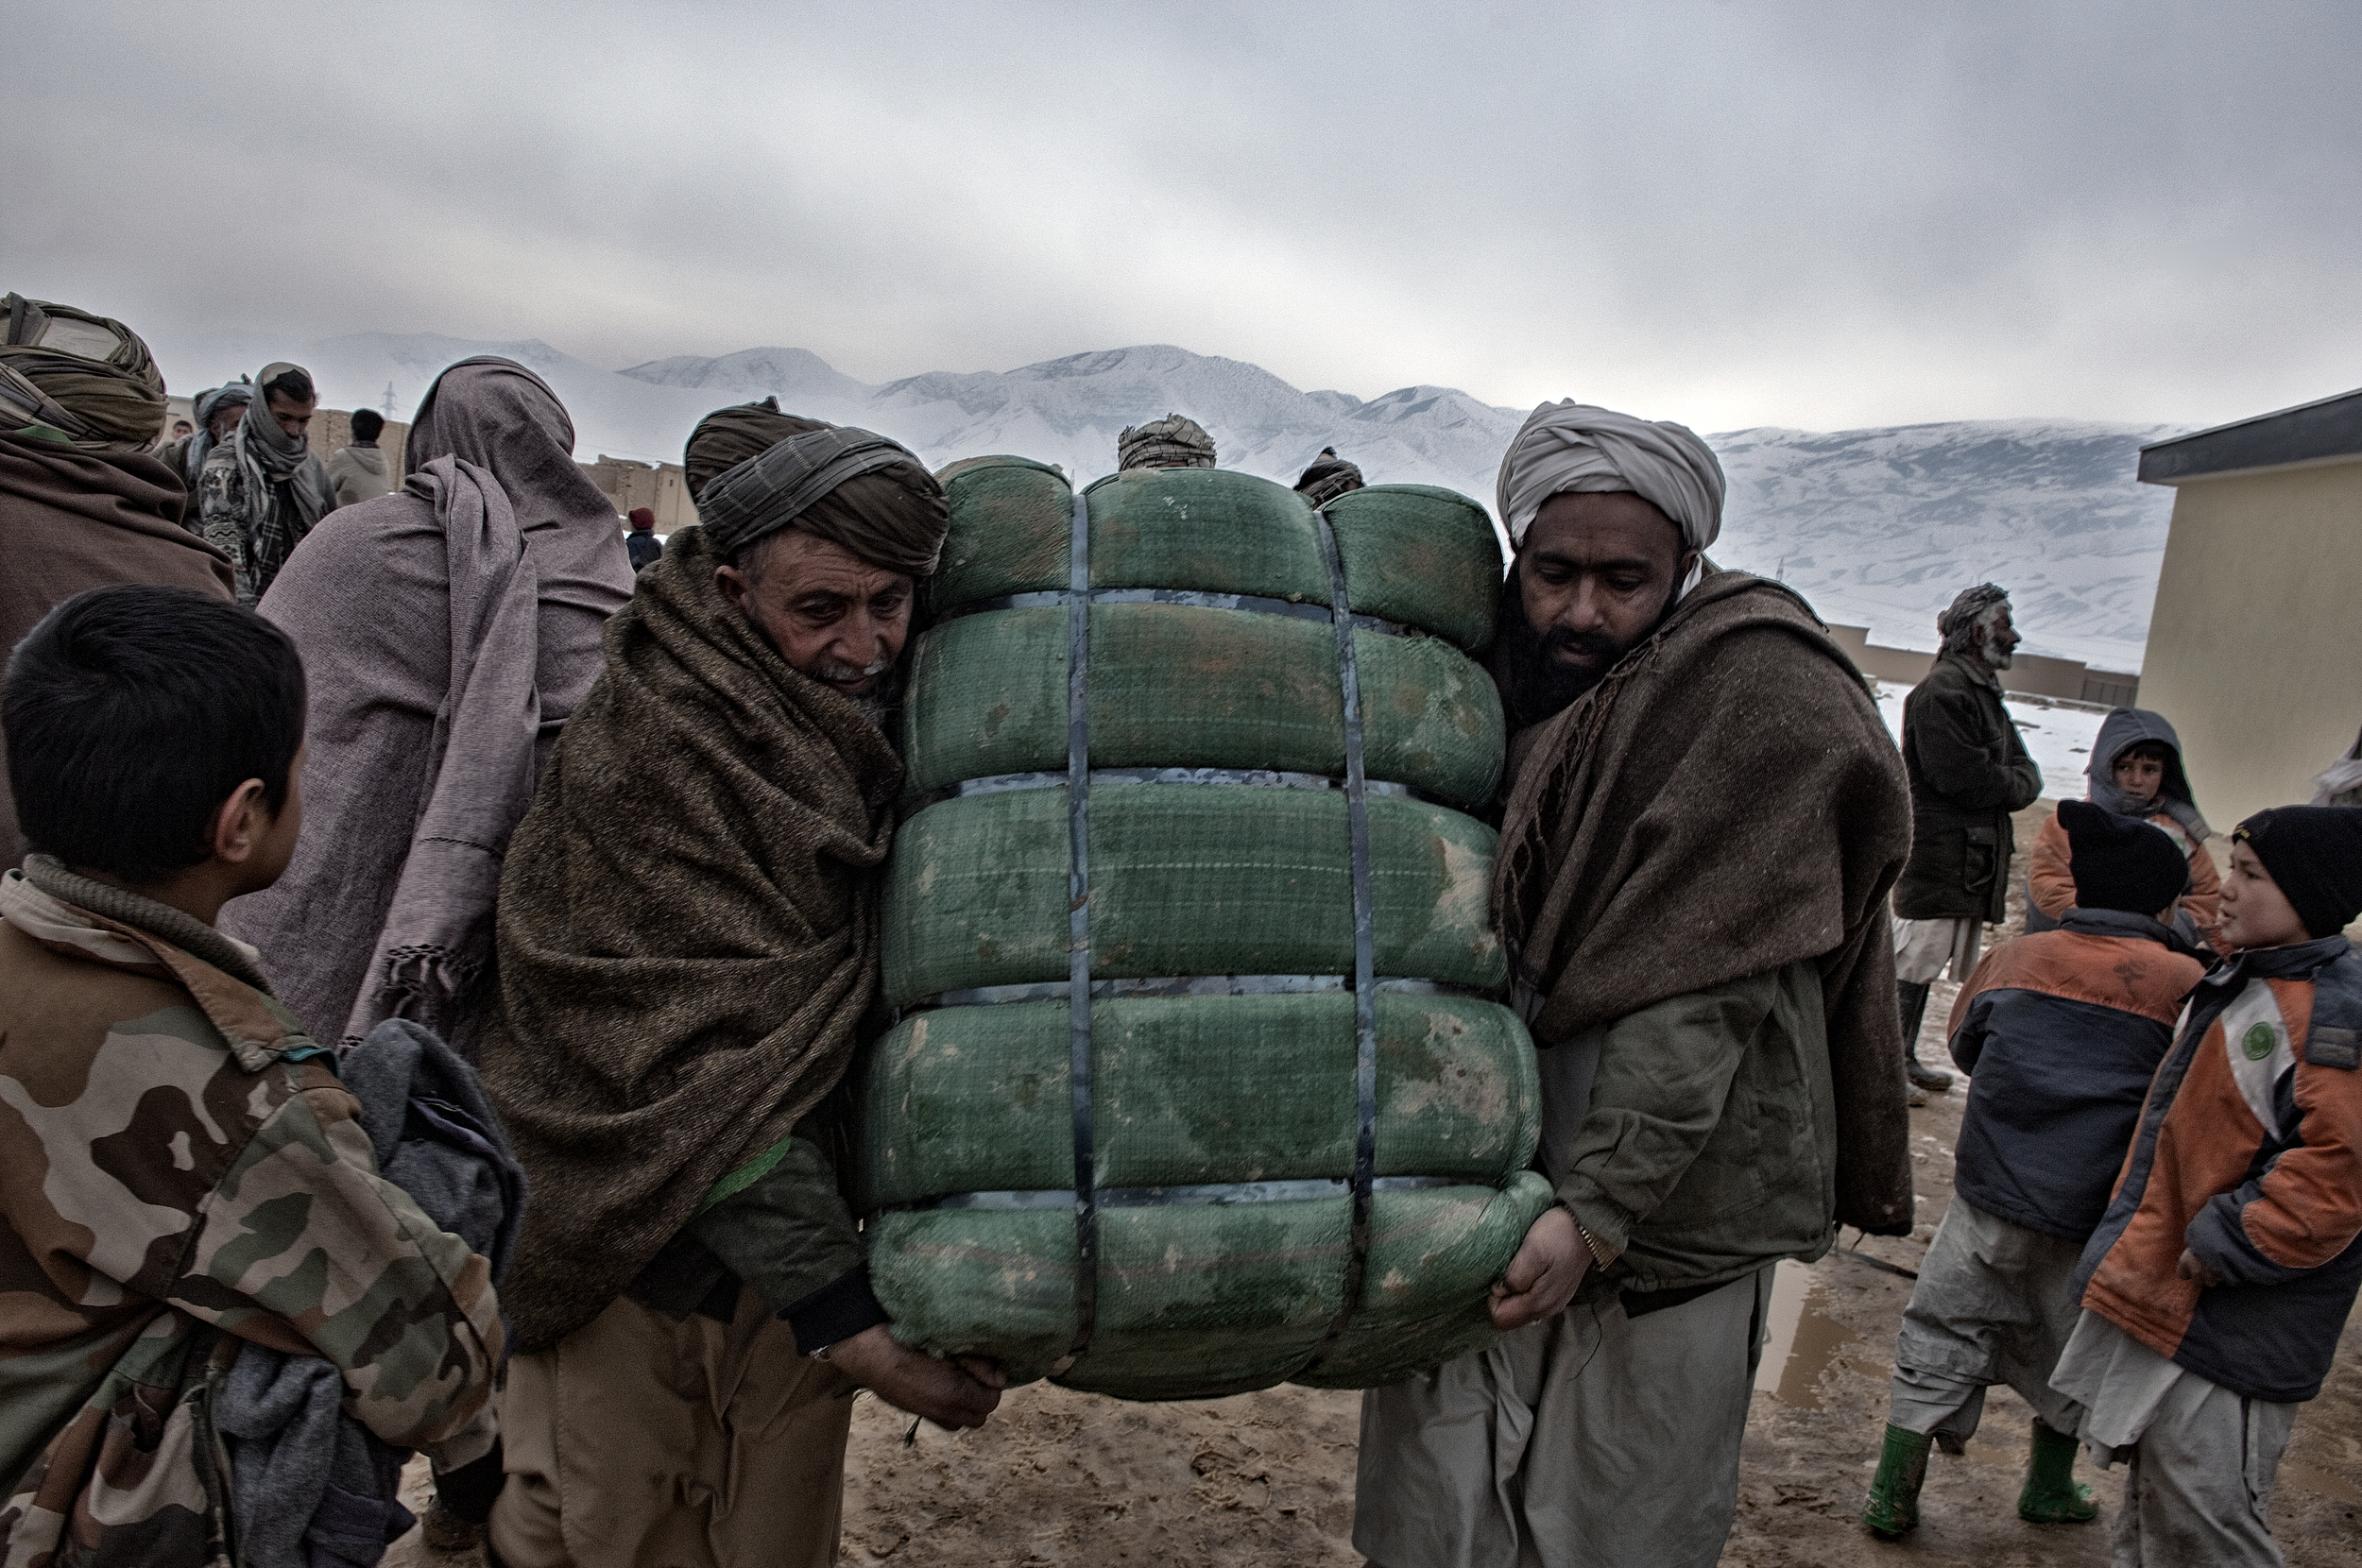 Winterised aid distribution from ACTED to a displacement camp near Pul i Khumri ,  Baghlan Province, Afghanistan, February 13, 2008. (Photo/Mark Pearson)